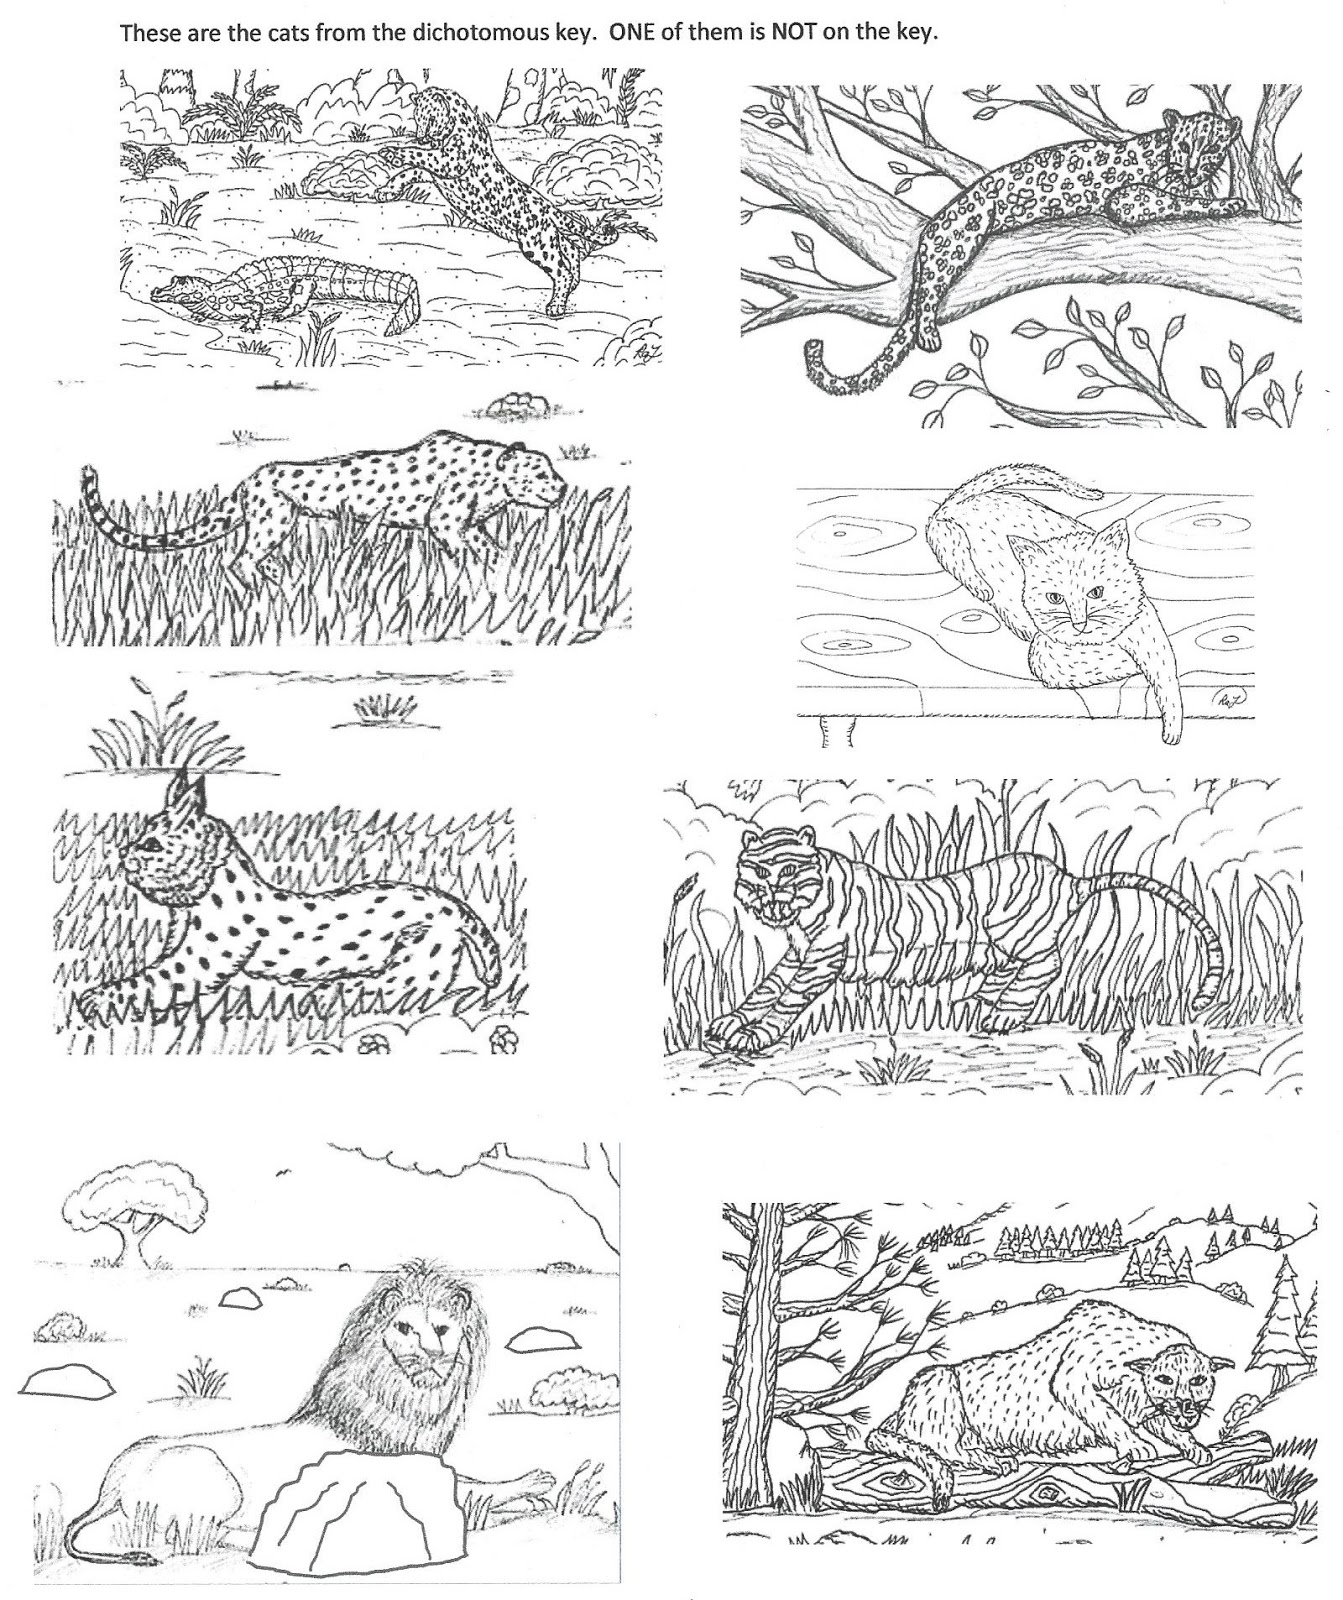 Robin S Great Coloring Pages Dichotomous Key For Some